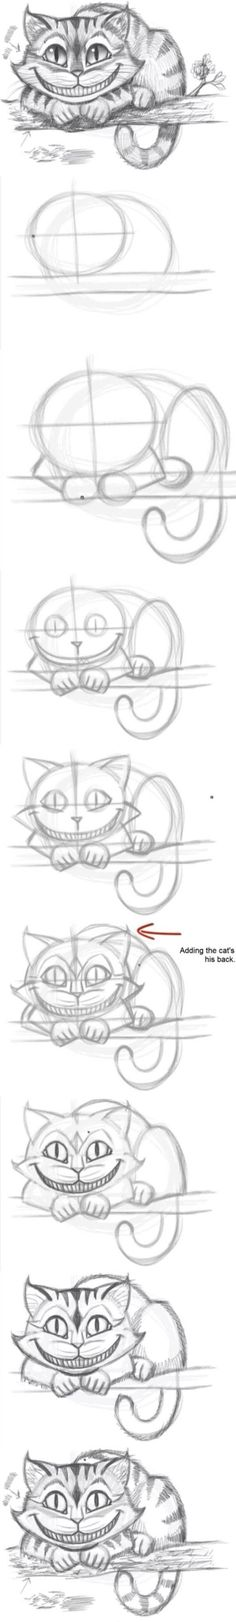 How to Draw the Cheshire Cat by usefuldiy: : ) #Drawing #Cheshire_Cat by LisaDB: